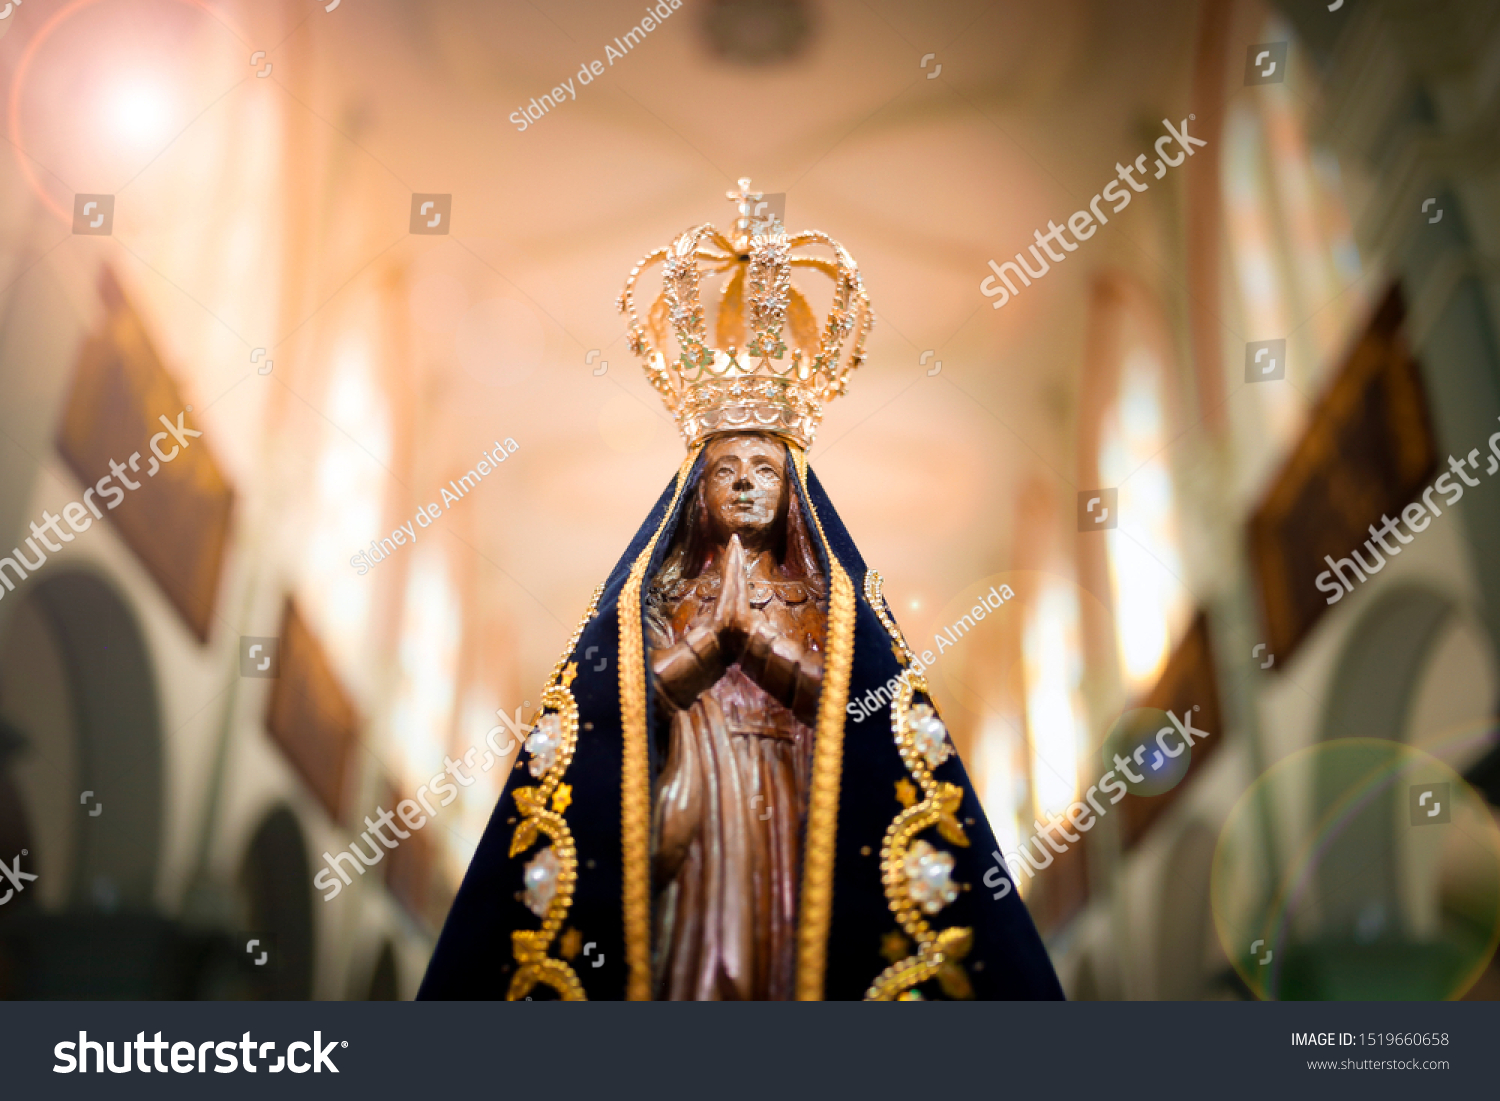 Statue of the image of Our Lady of Aparecida, mother of God in the Catholic religion, patroness of Brazil #1519660658